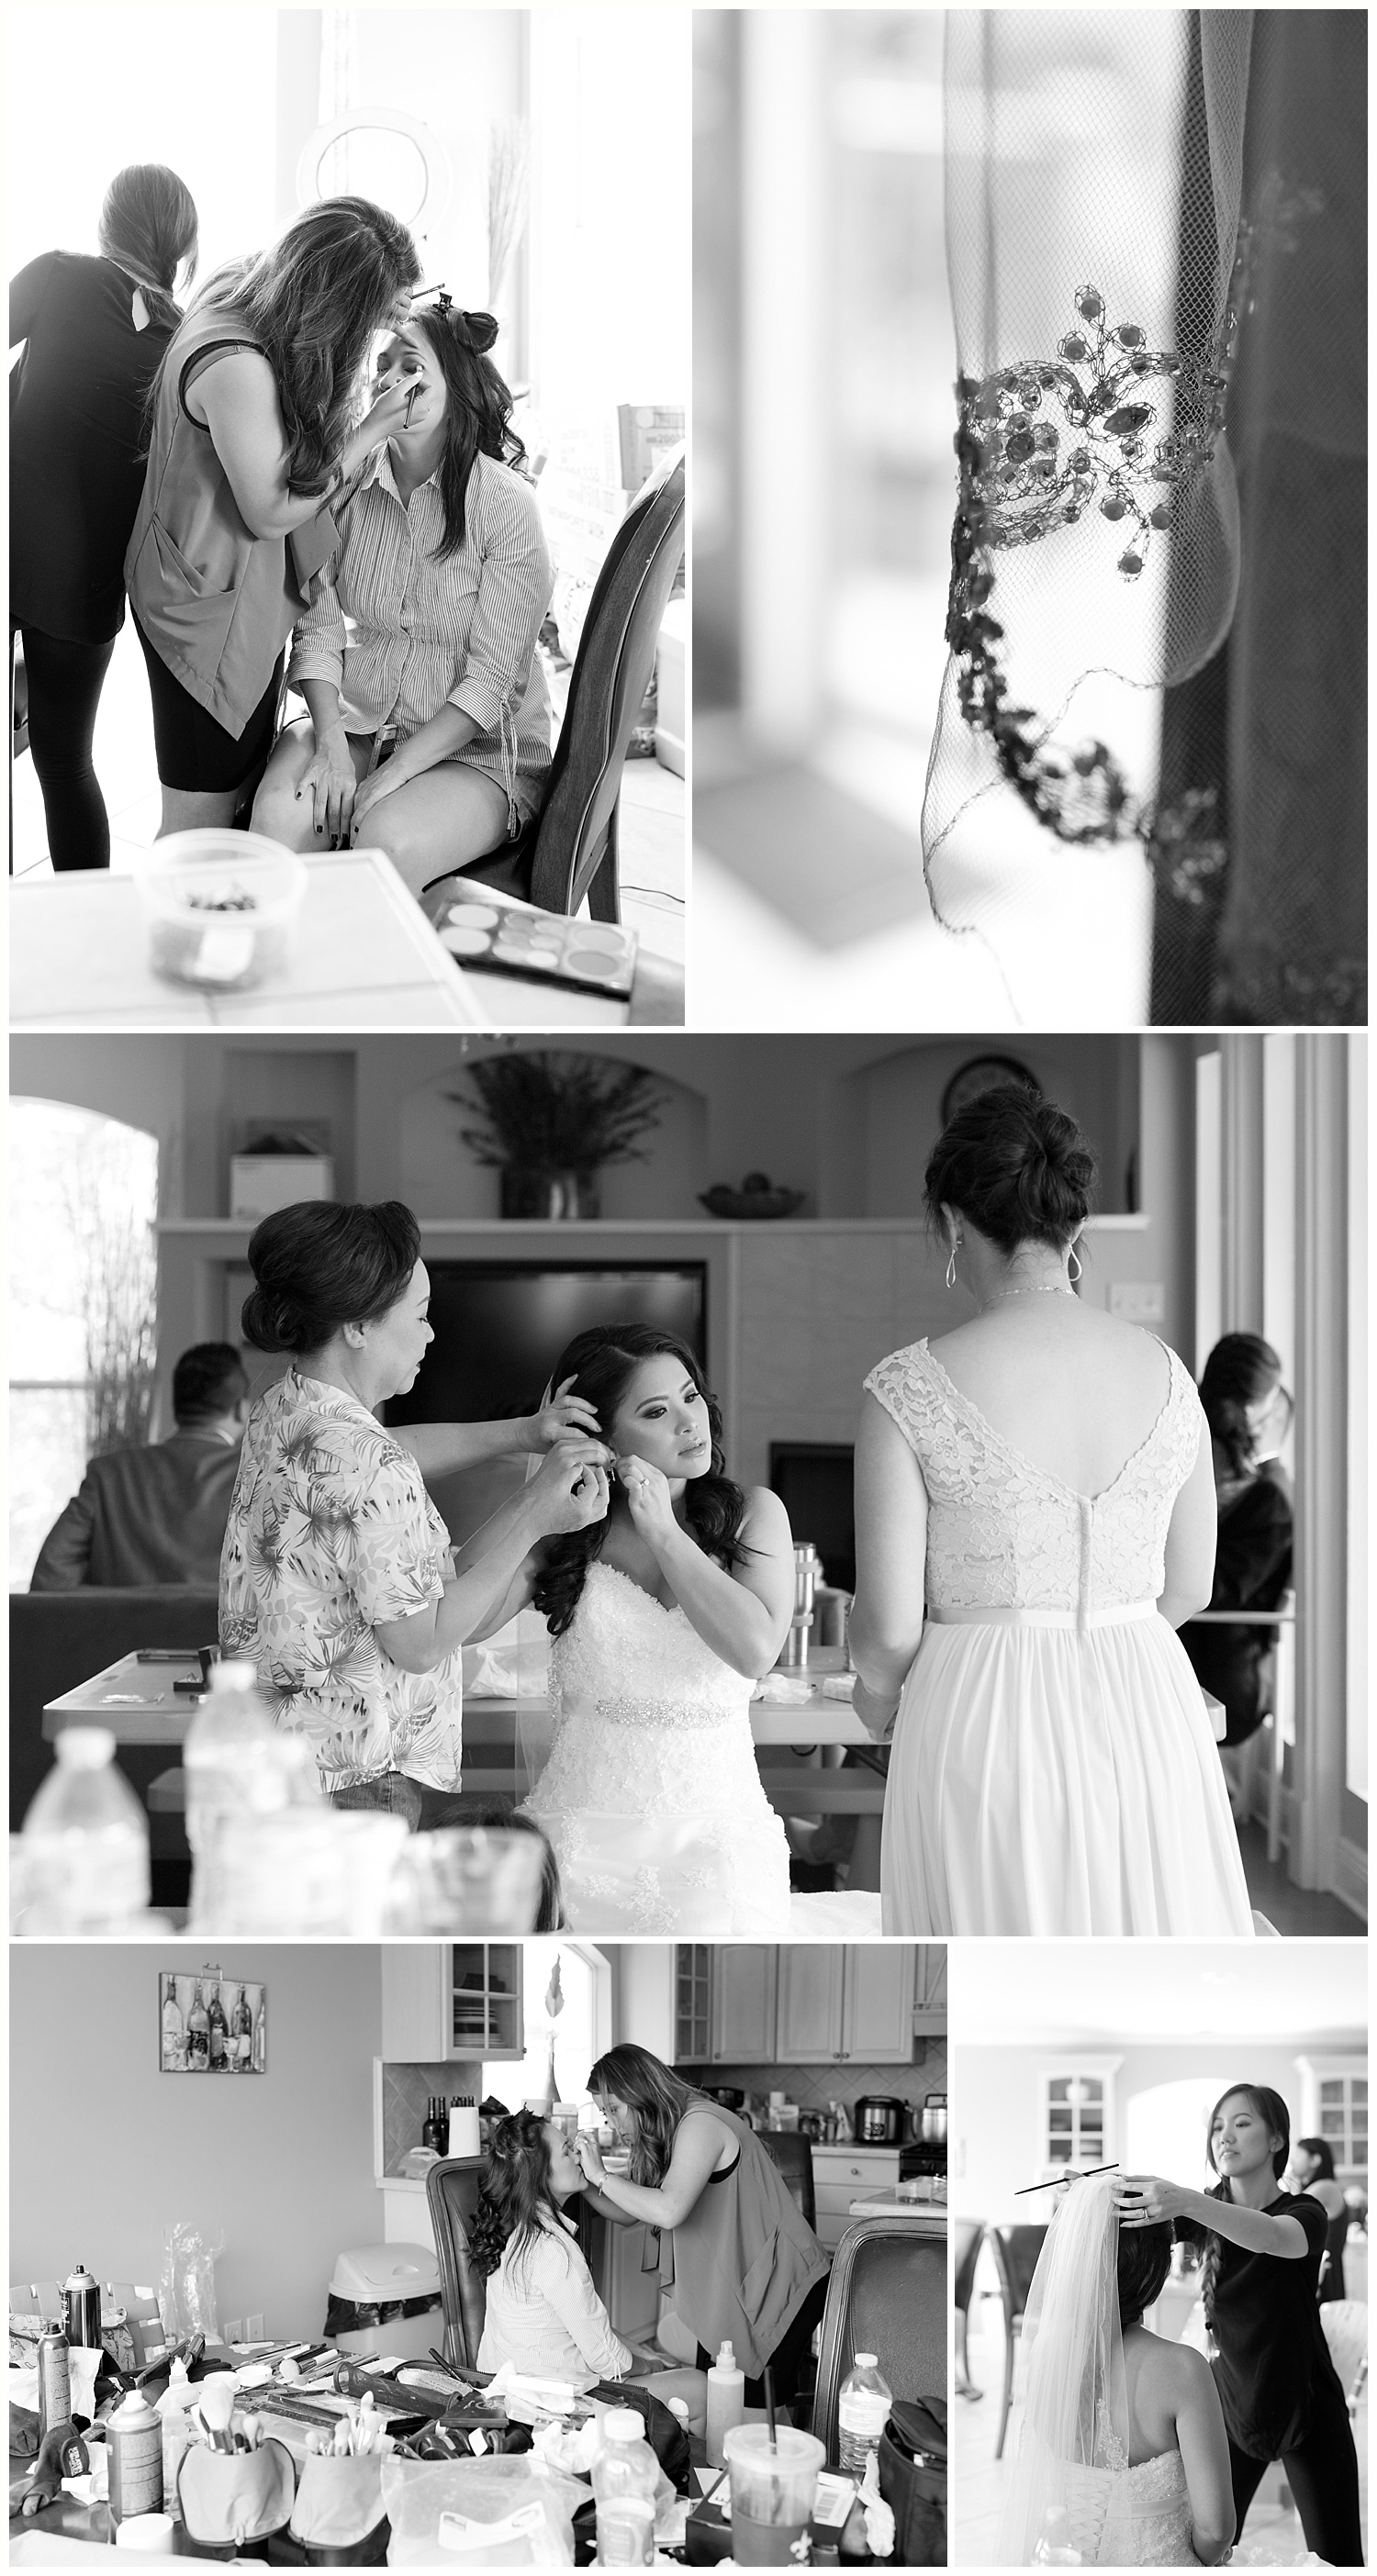 bride and bridesmaids getting ready - wedding preparation photos - New Orleans wedding photographer